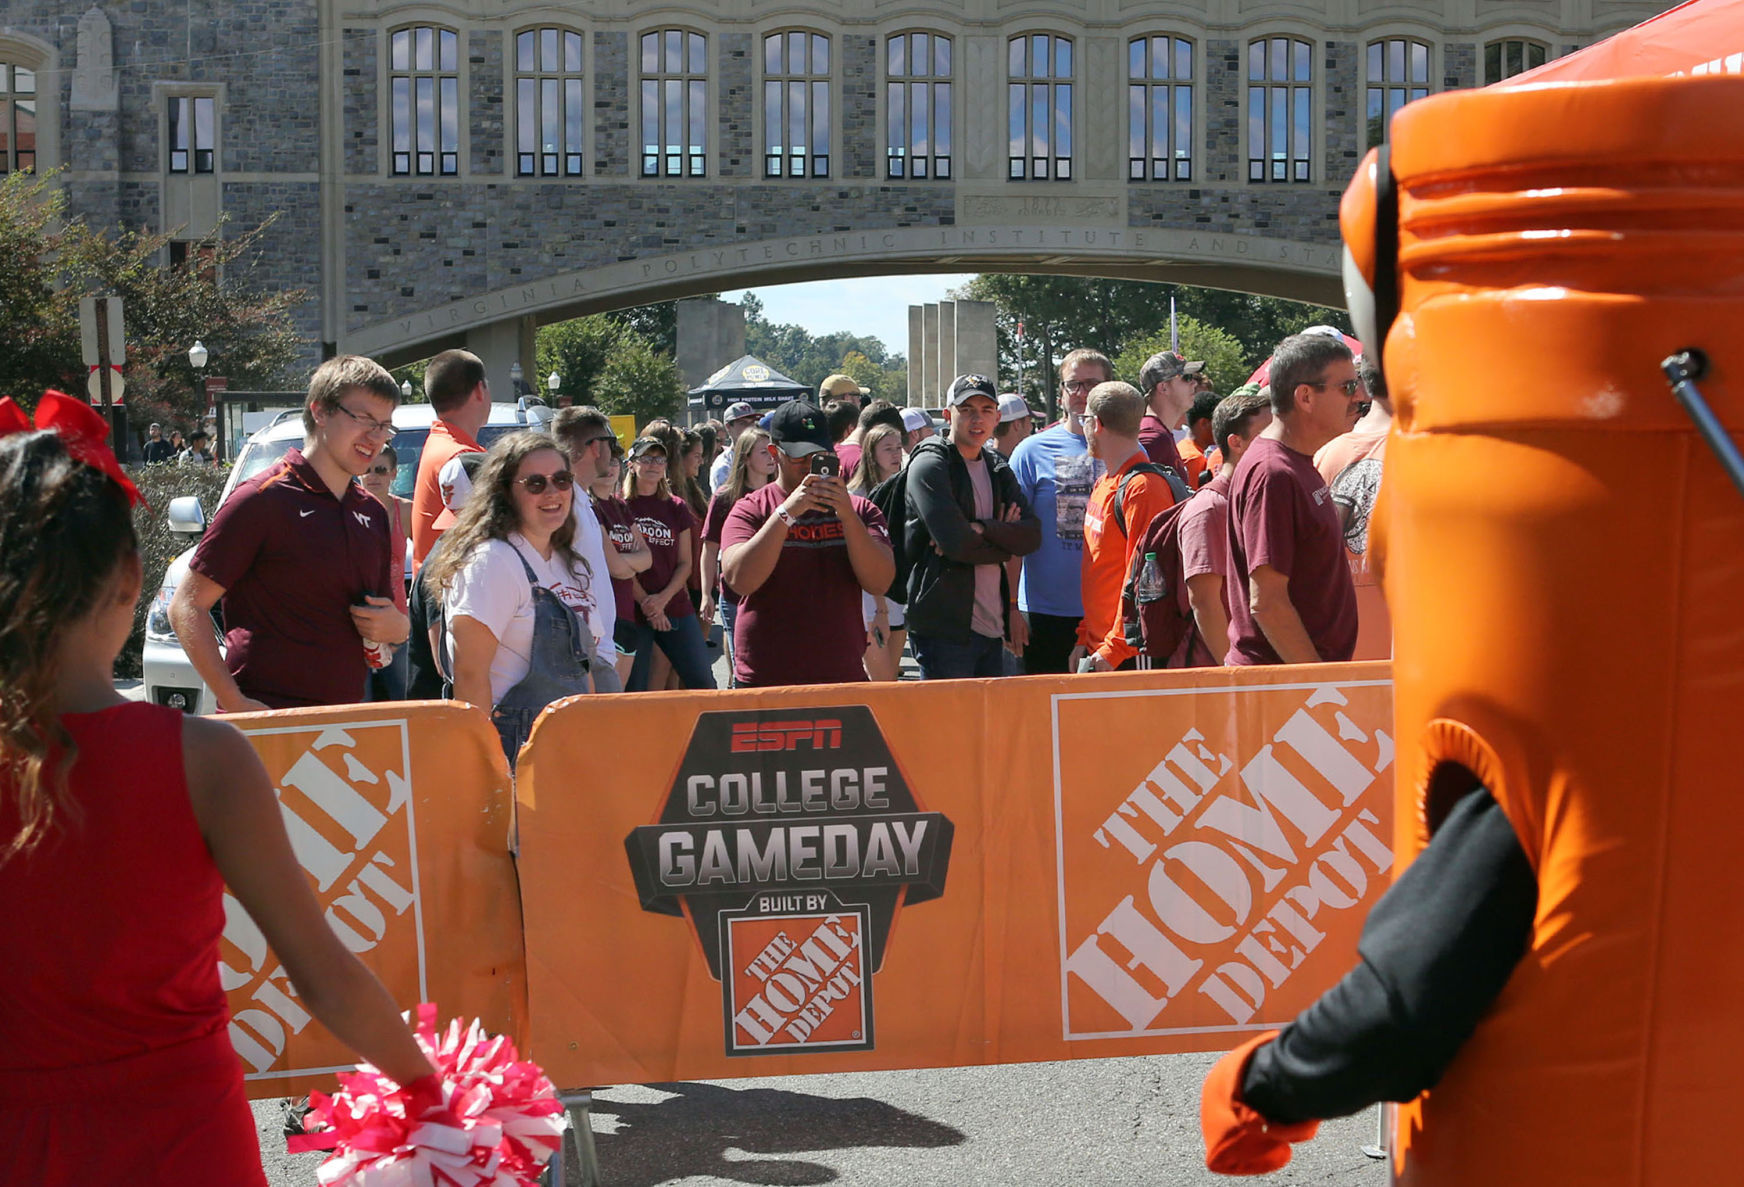 Best ESPN College GameDay signs Week 5: Clemson vs. Virginia Tech